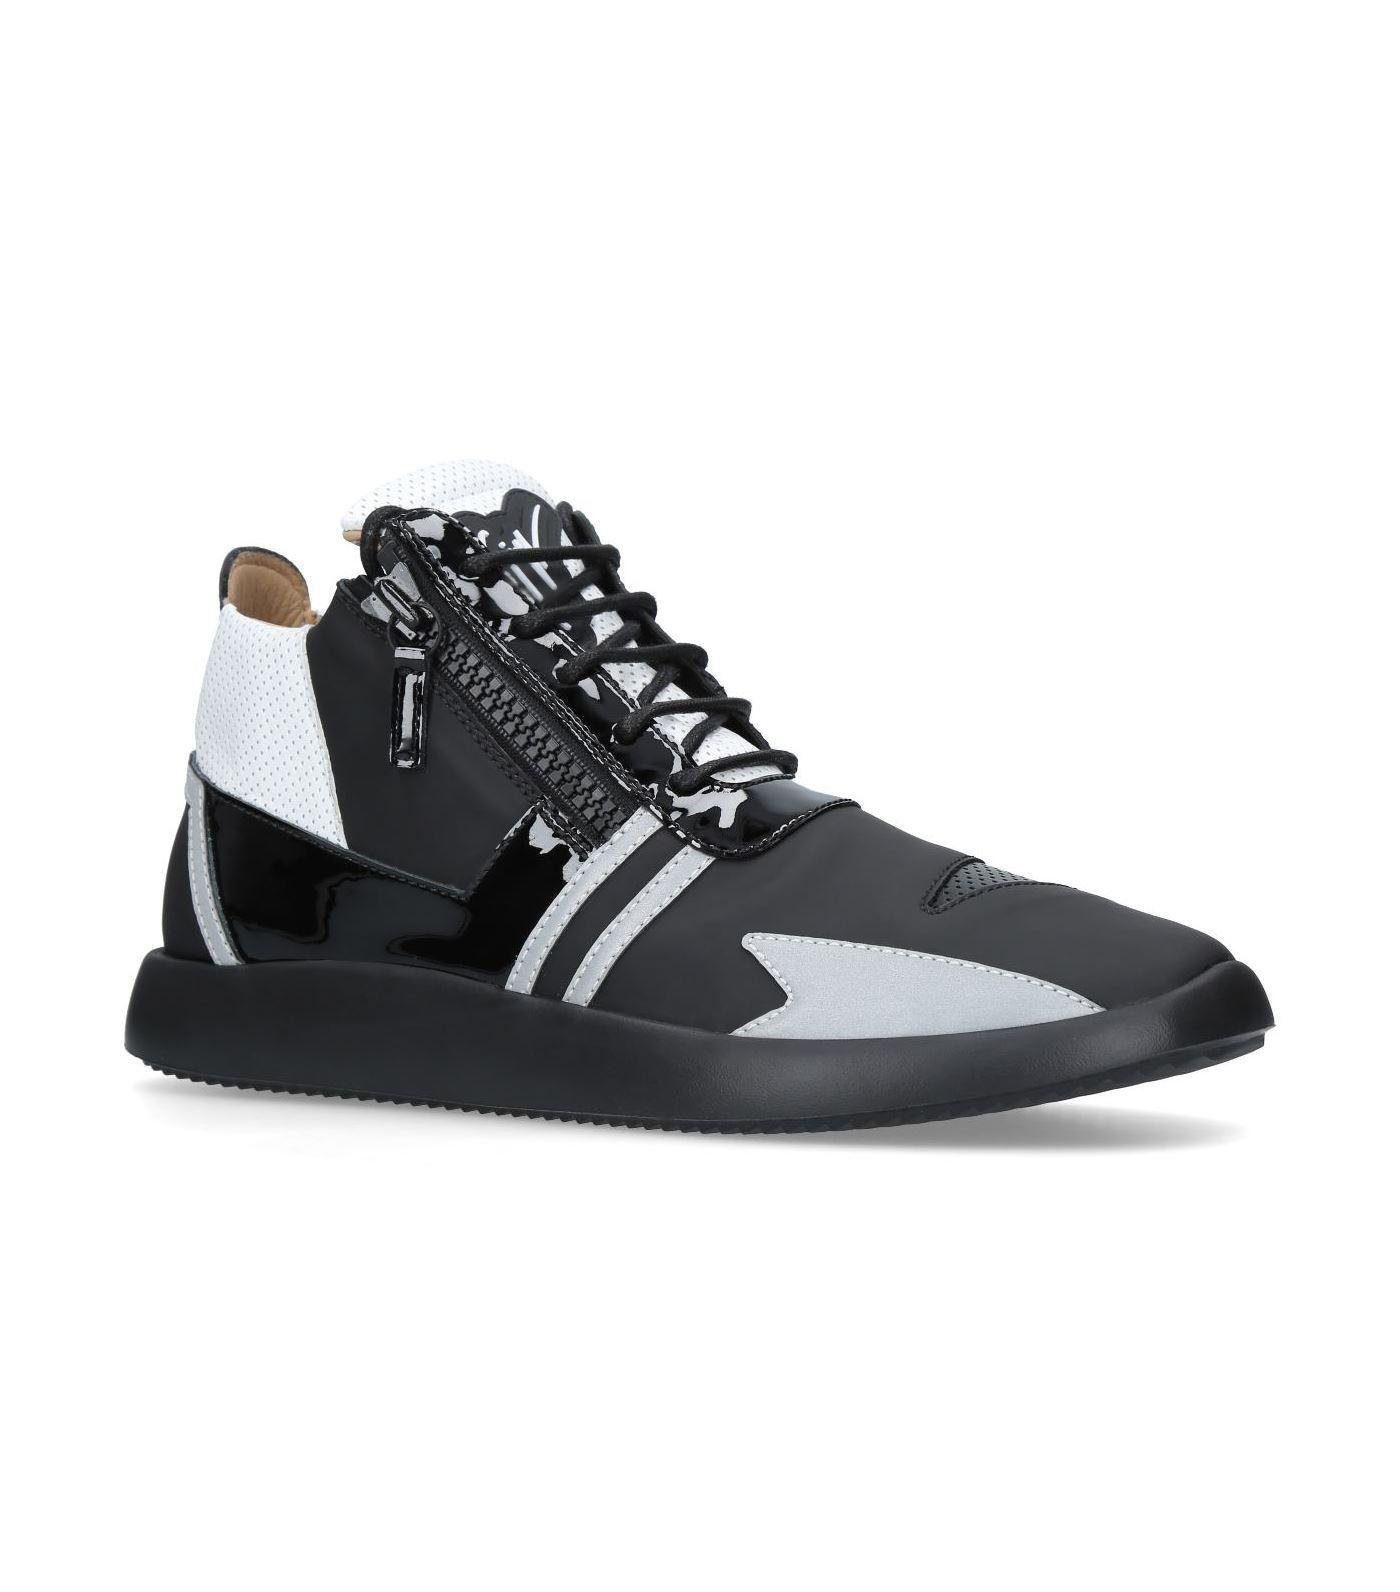 c05467d4335 Lyst - Giuseppe Zanotti Leather Layered Sneakers in Black for Men